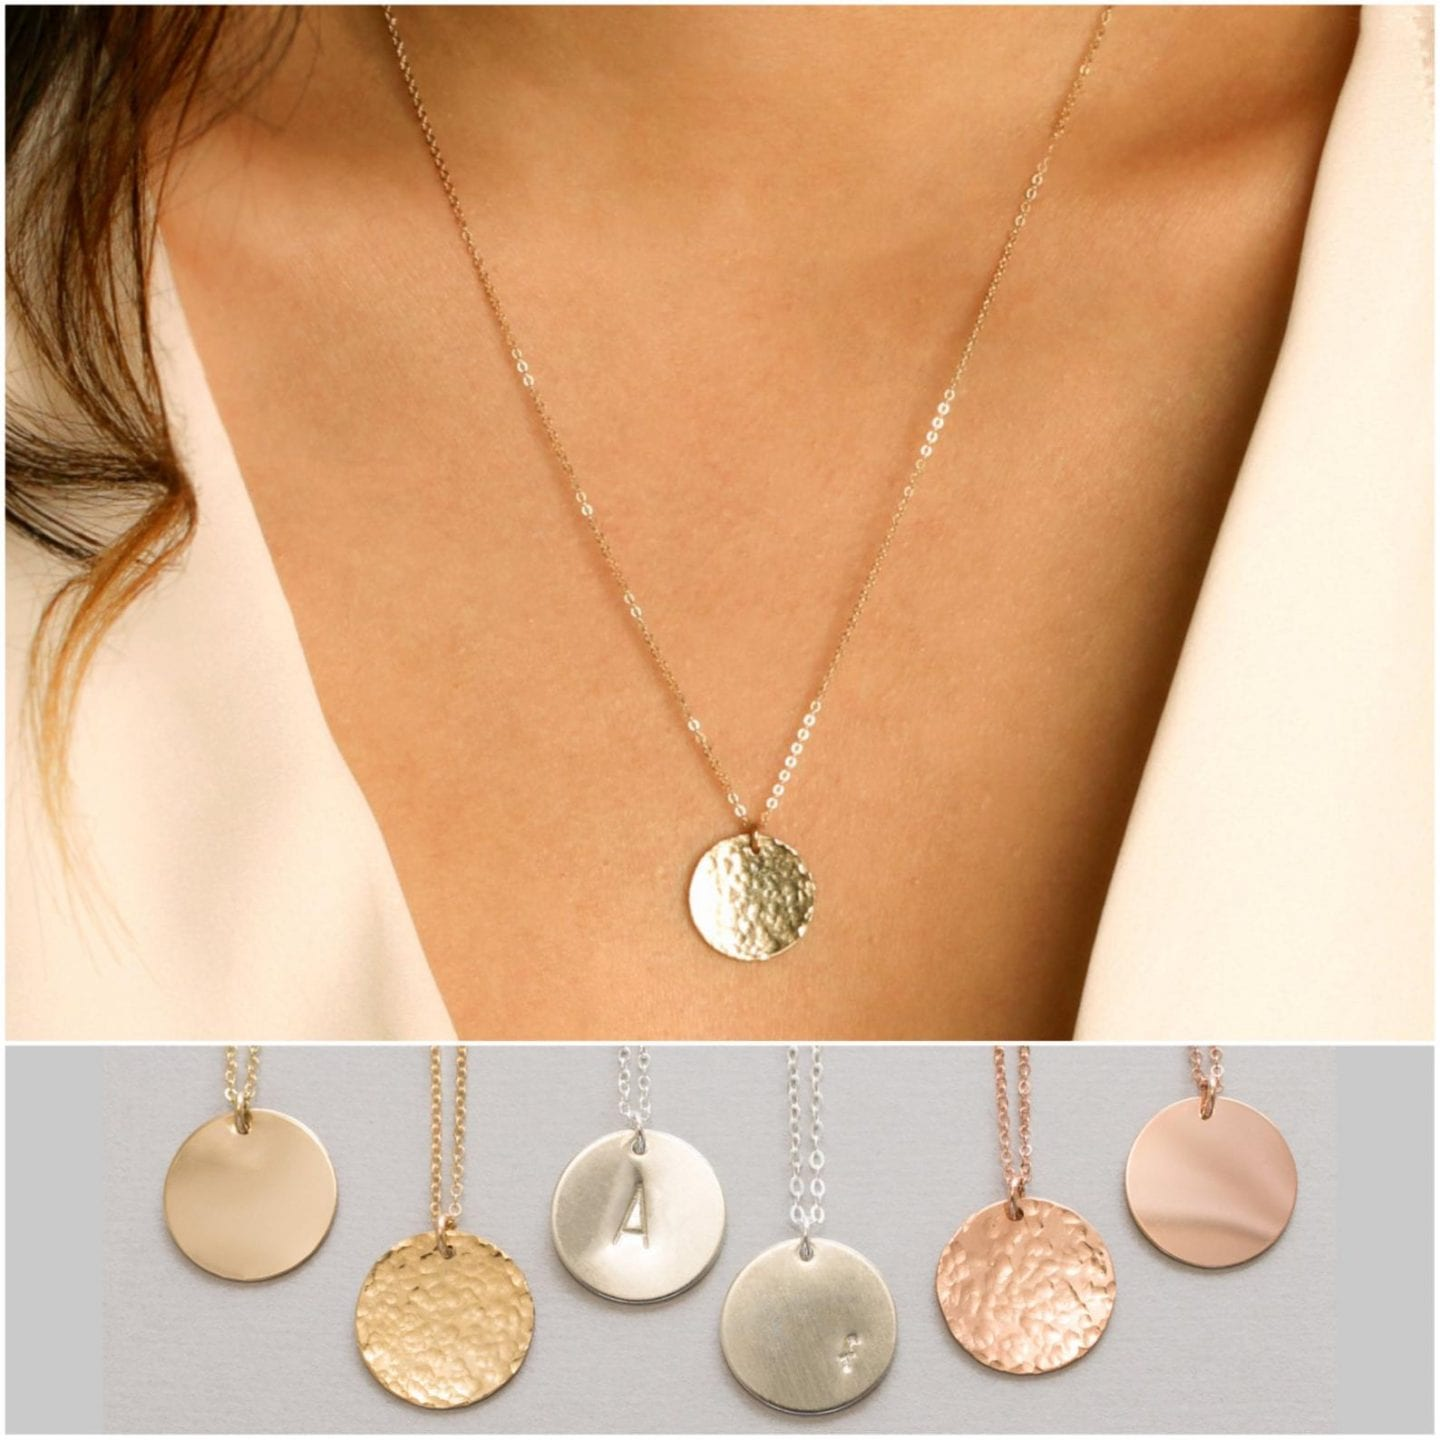 Initial Jewelry by popular San Francisco fashion blog, Just Add Glam: image of a large coin necklace monogram.